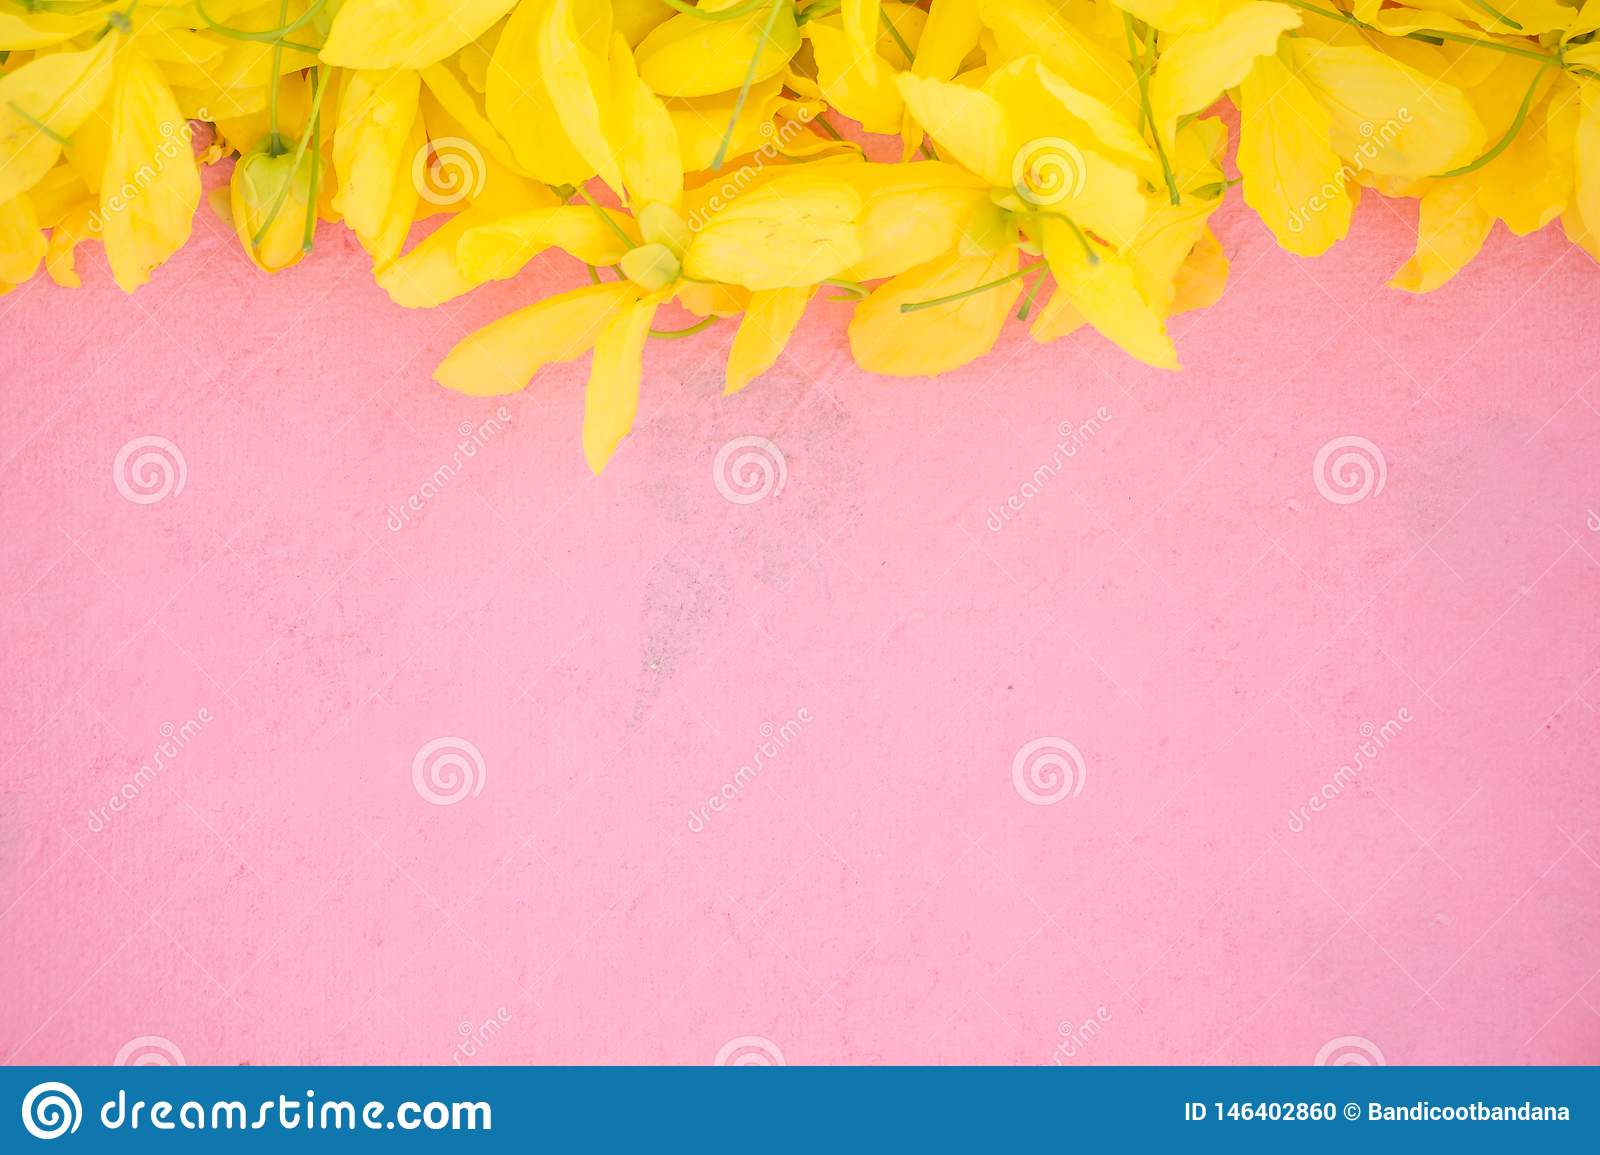 Wallpeper close up nature Yellow flower on pink background